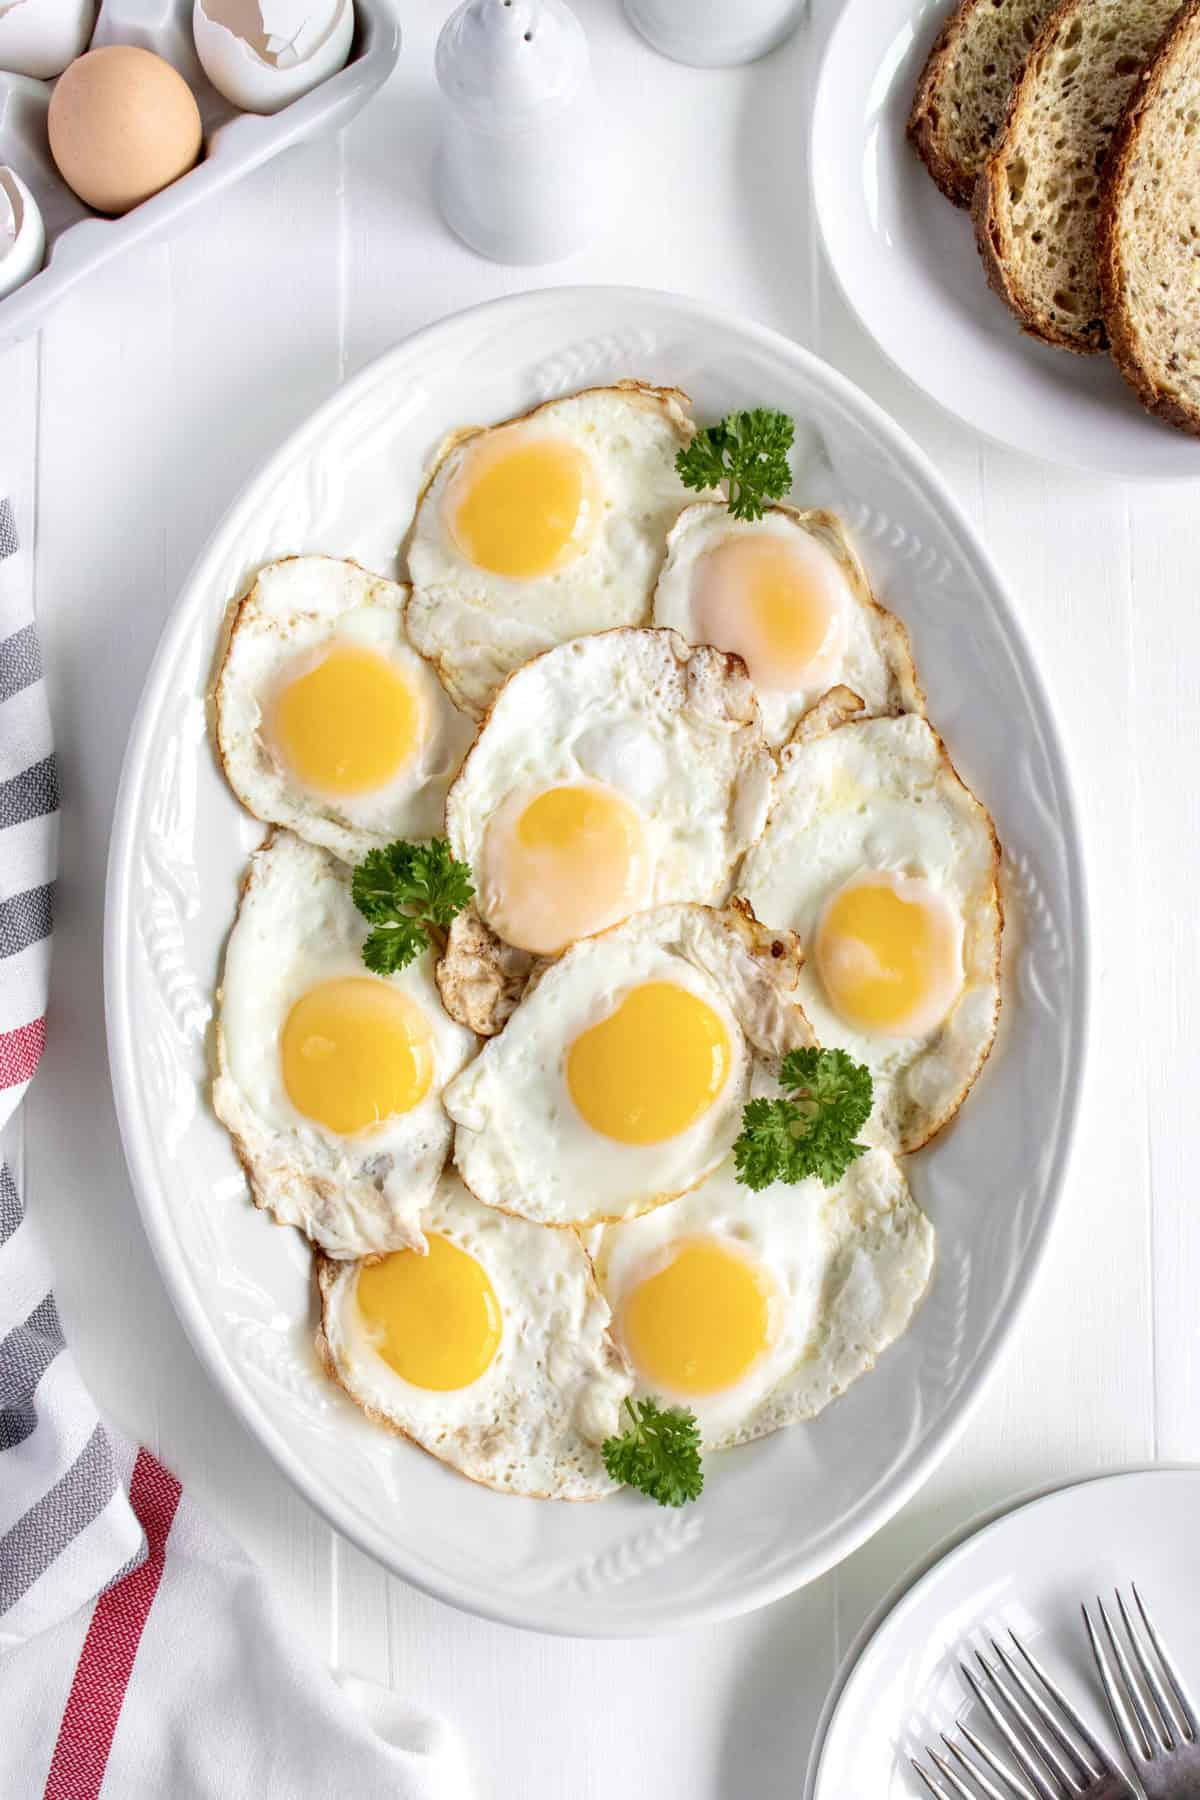 Basics by The BakerMama: How to Cook Sunny-Side-Up Eggs